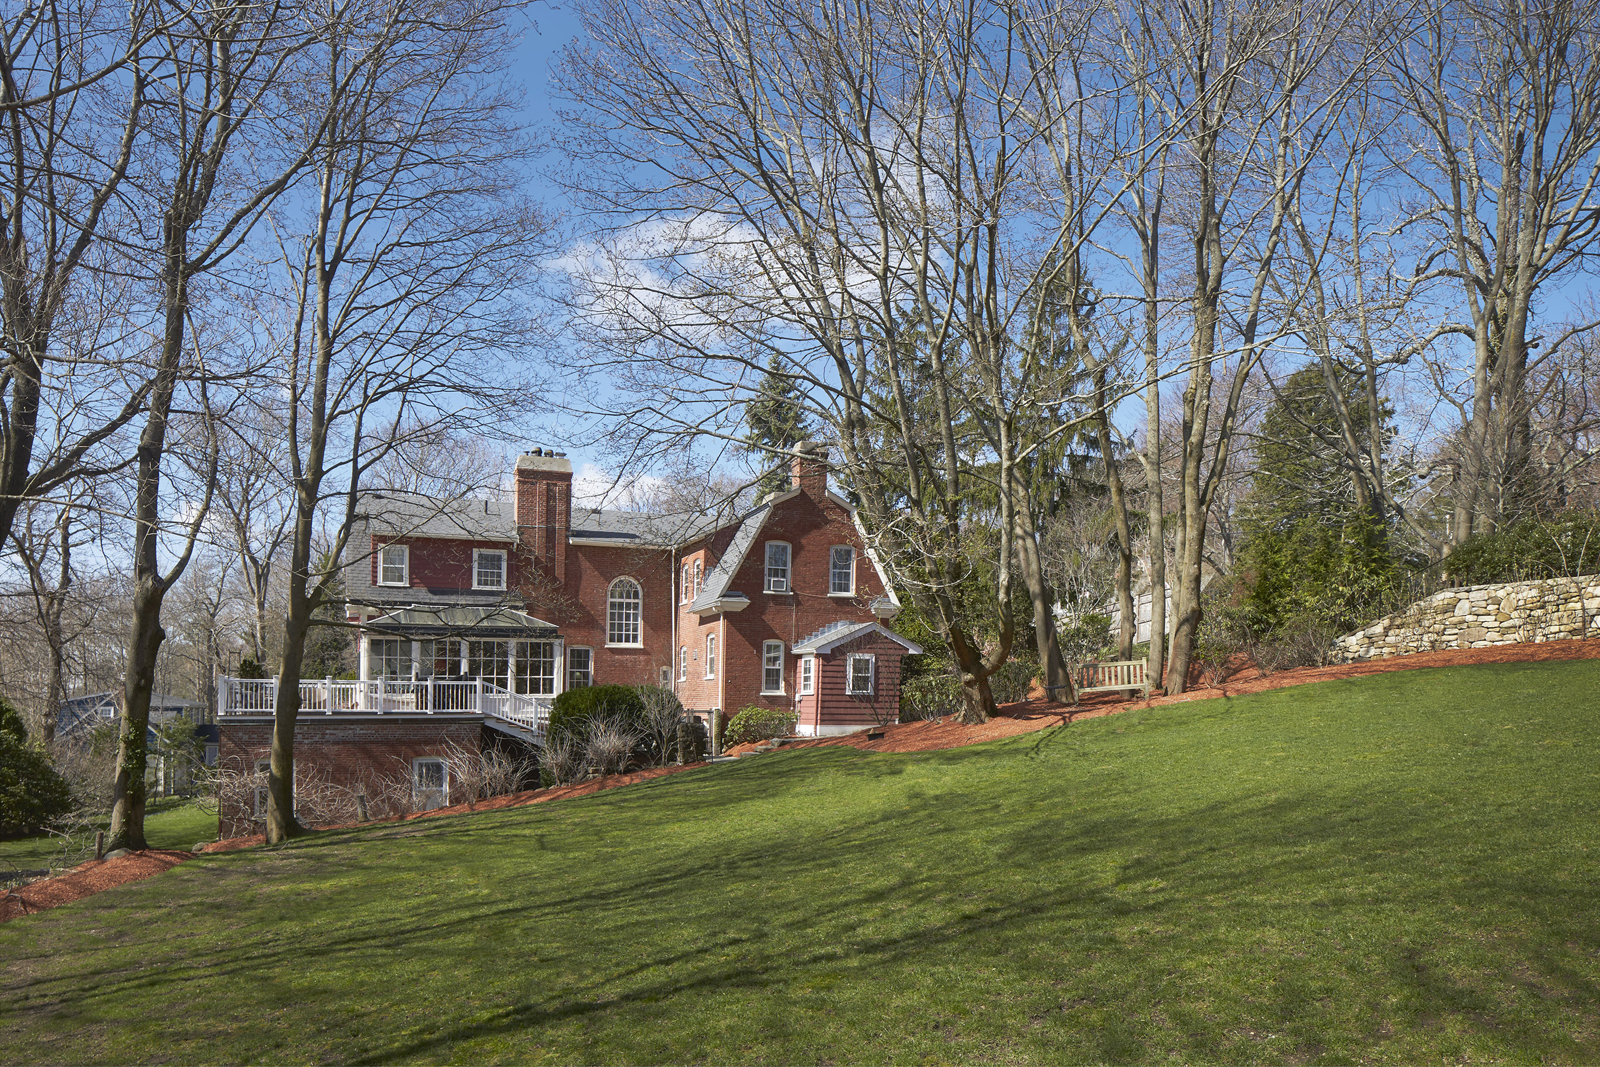 sales property at 527 Concord Avenue - Belmont, MA 02478